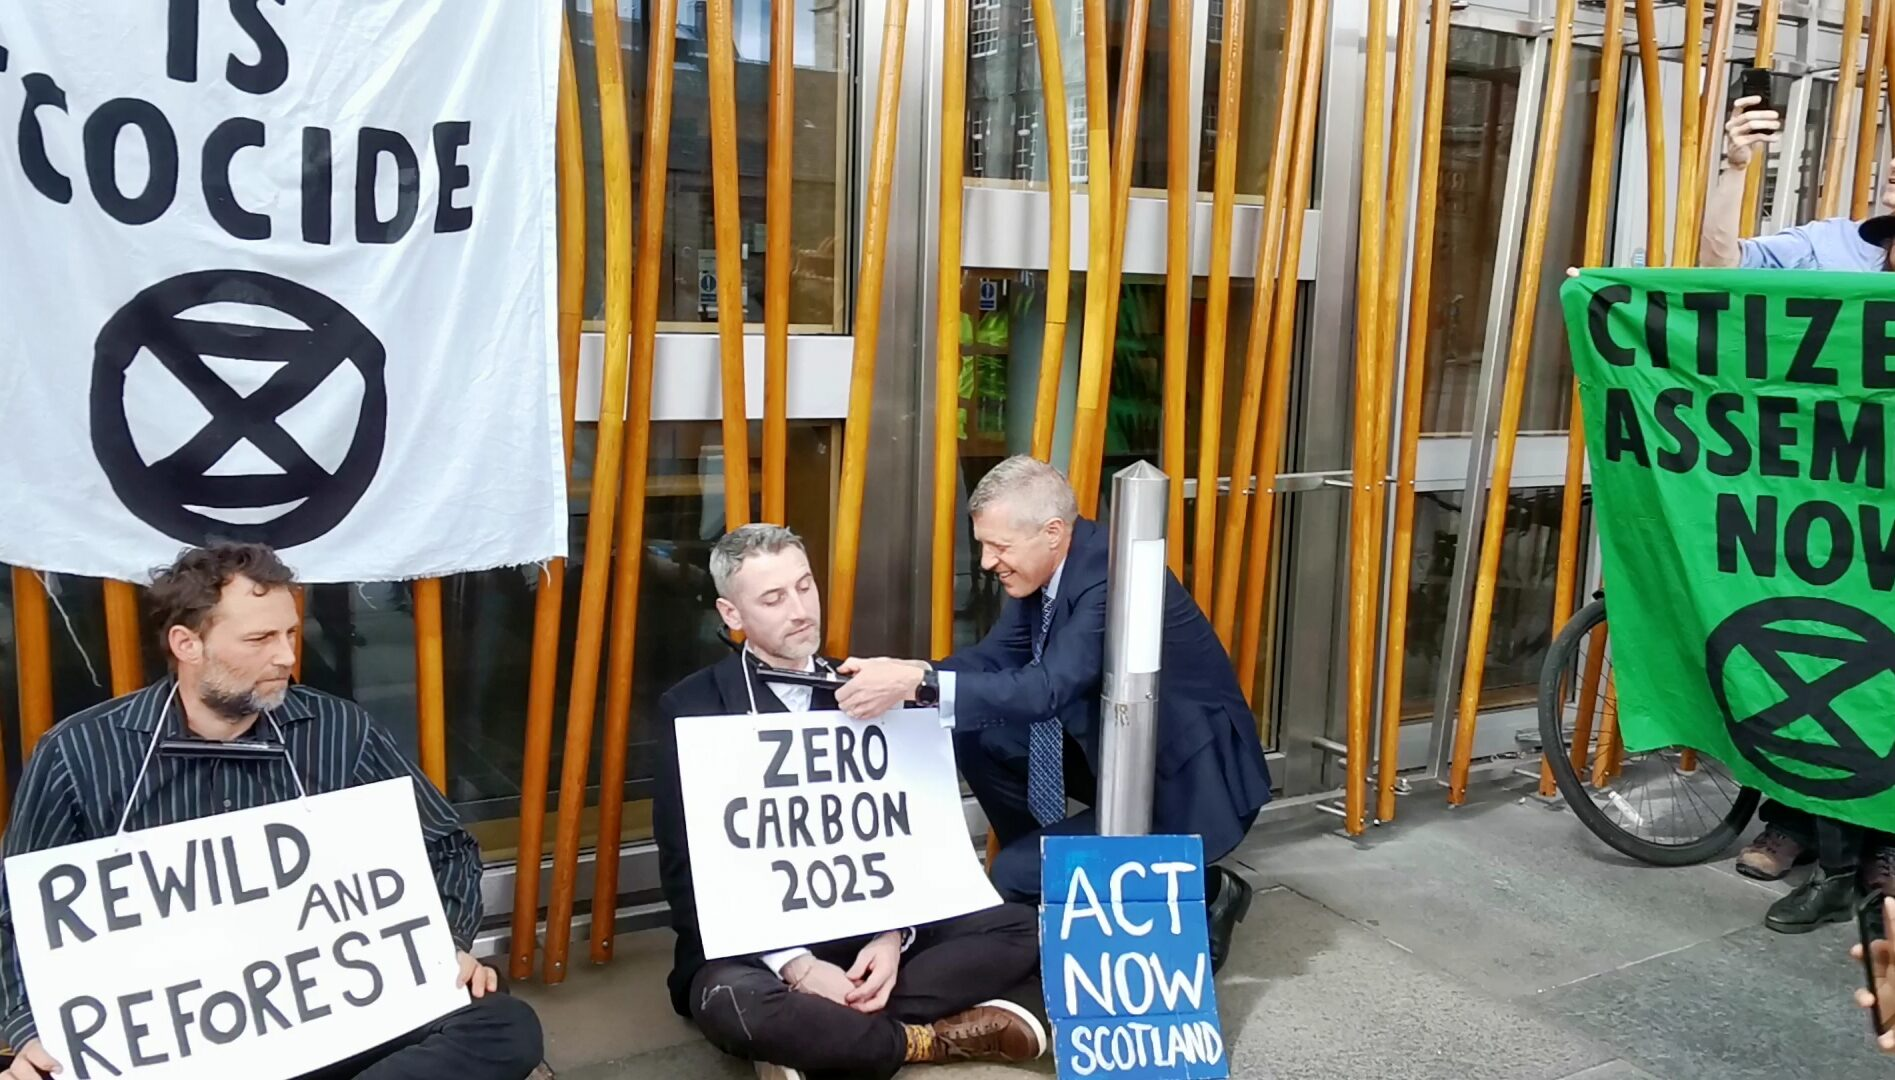 Scottish Liberal Democrat leader Willie Rennie unlocking a climate change activist outside the Scottish Parliament in Edinburgh (Tom Eden/PA)